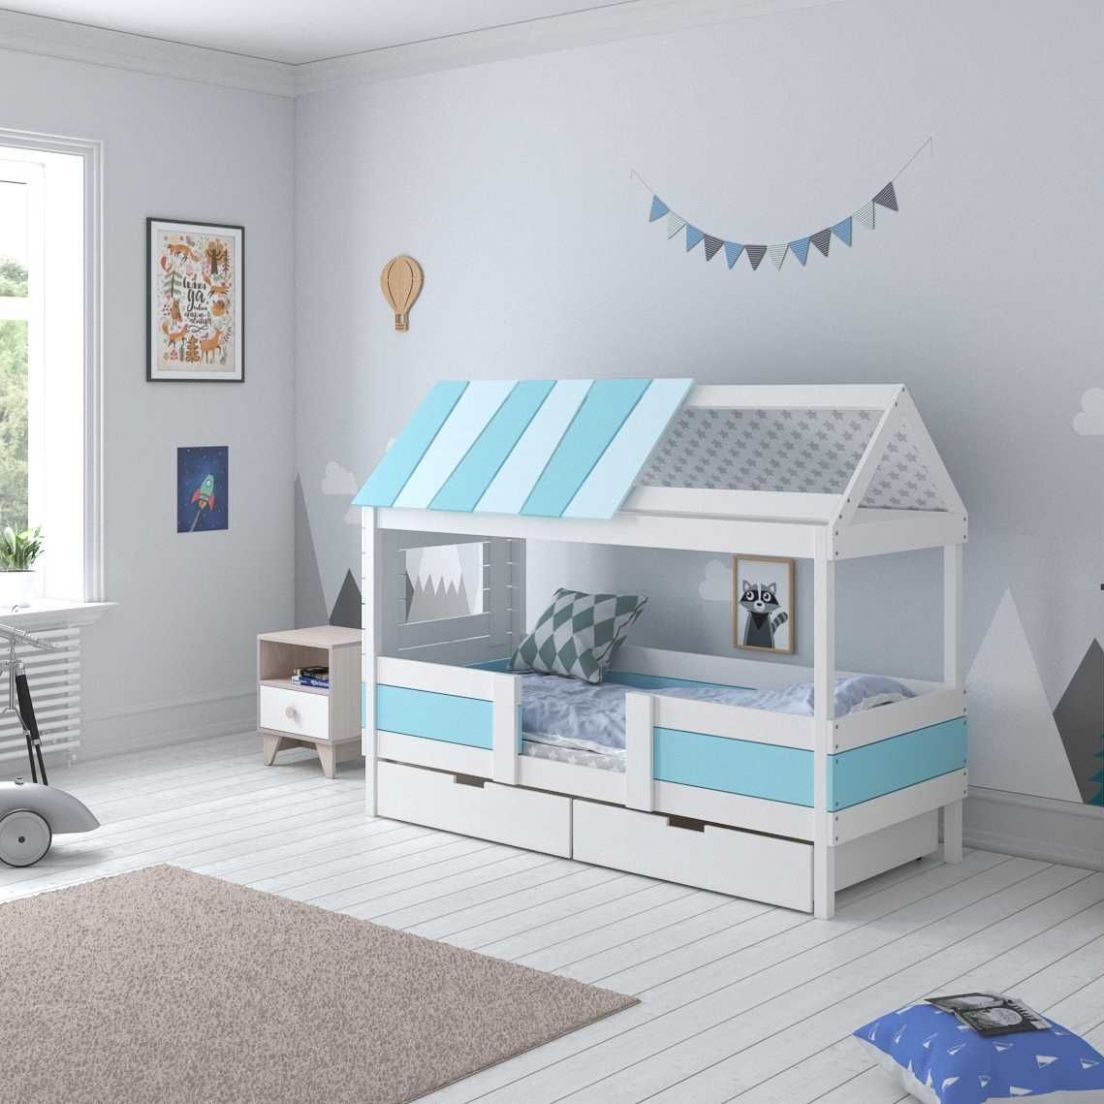 Children's & Baby Beds by ComfortBaby - Your Baby Equipment Store